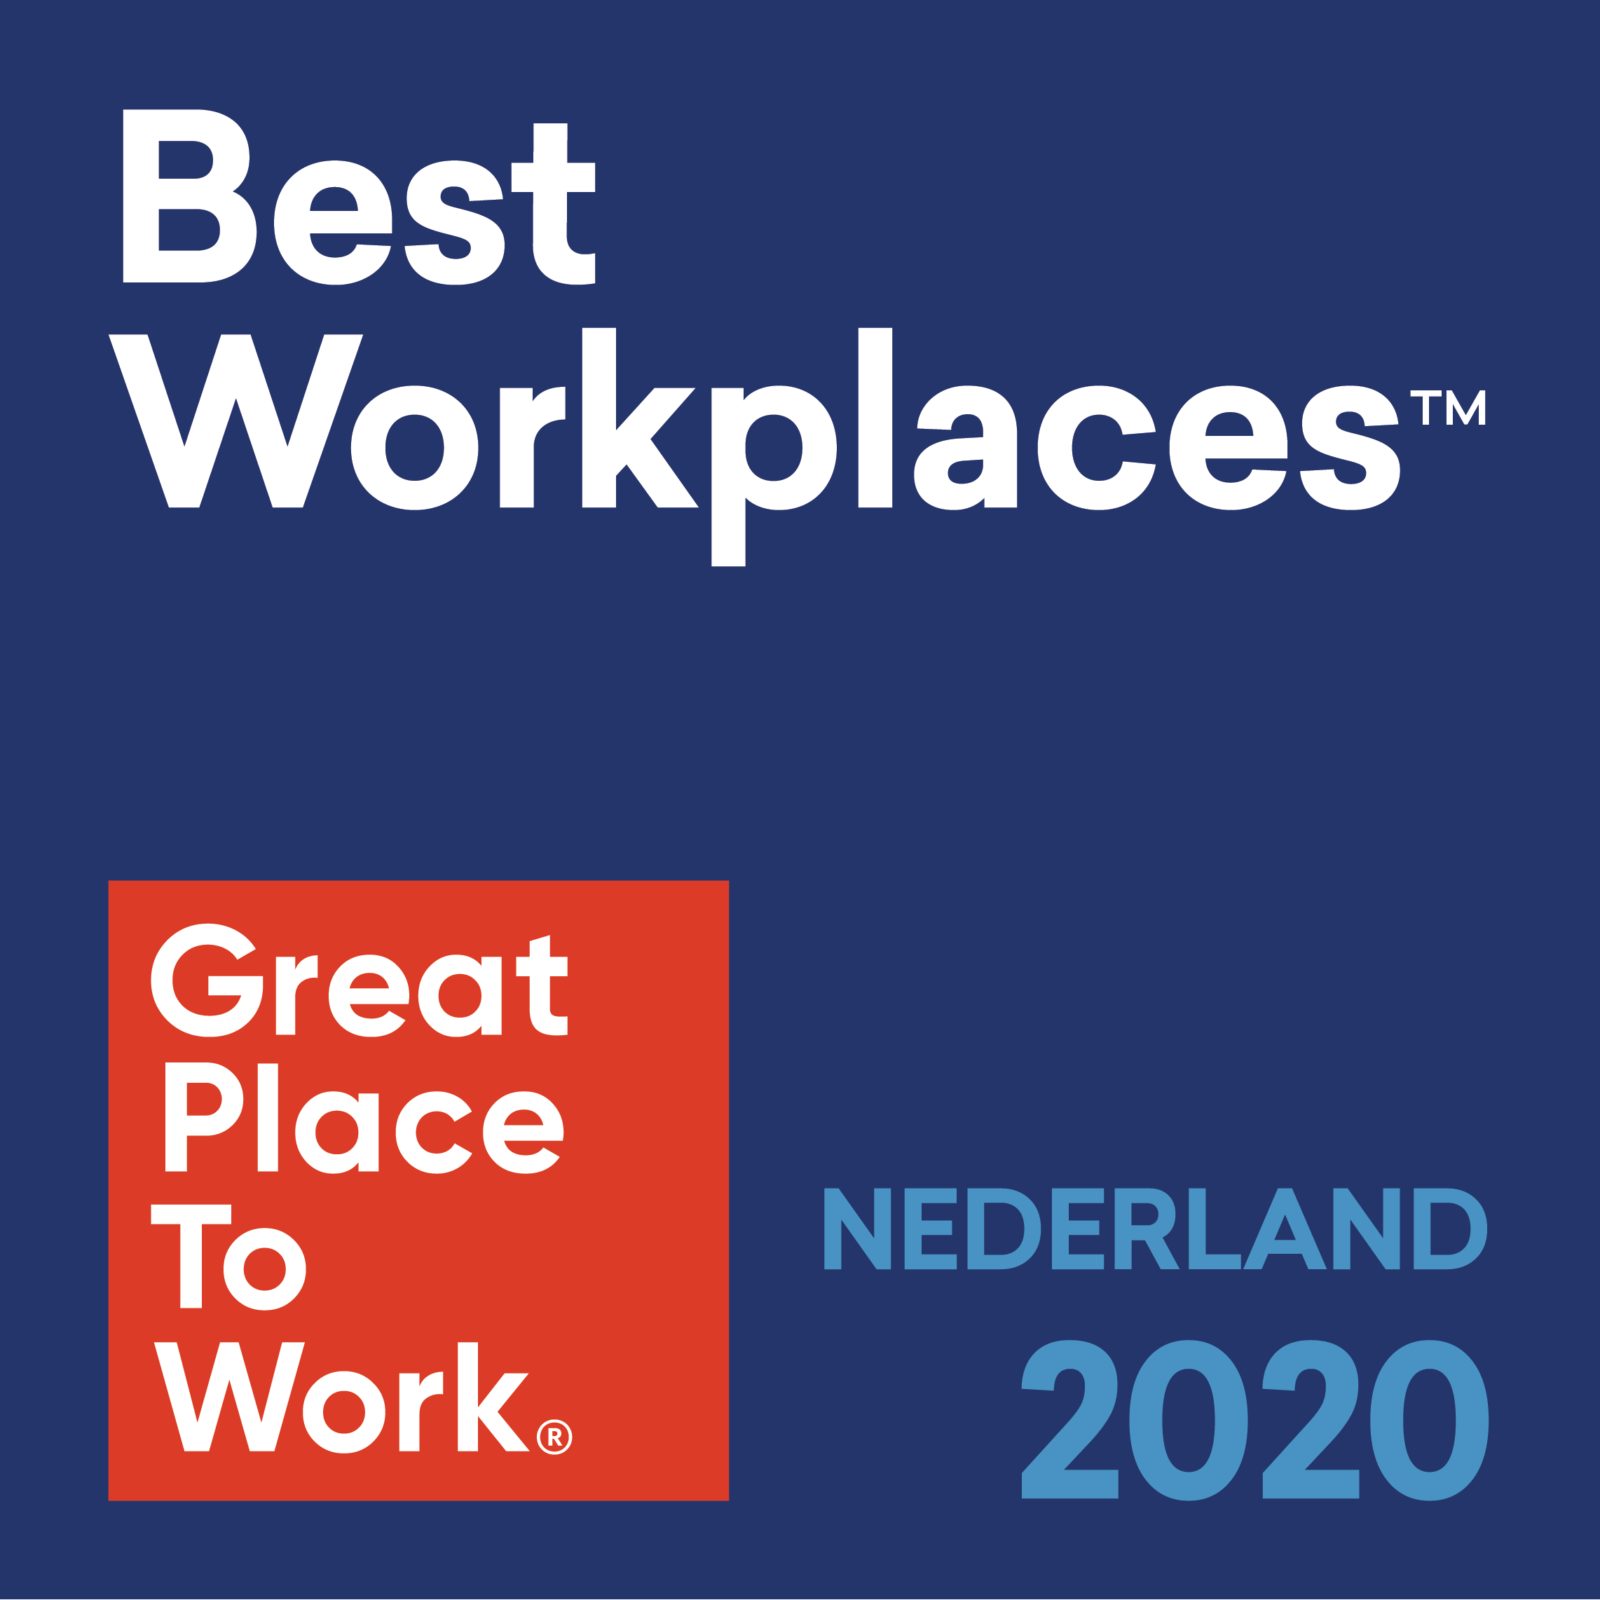 Great place to work certified; 2020